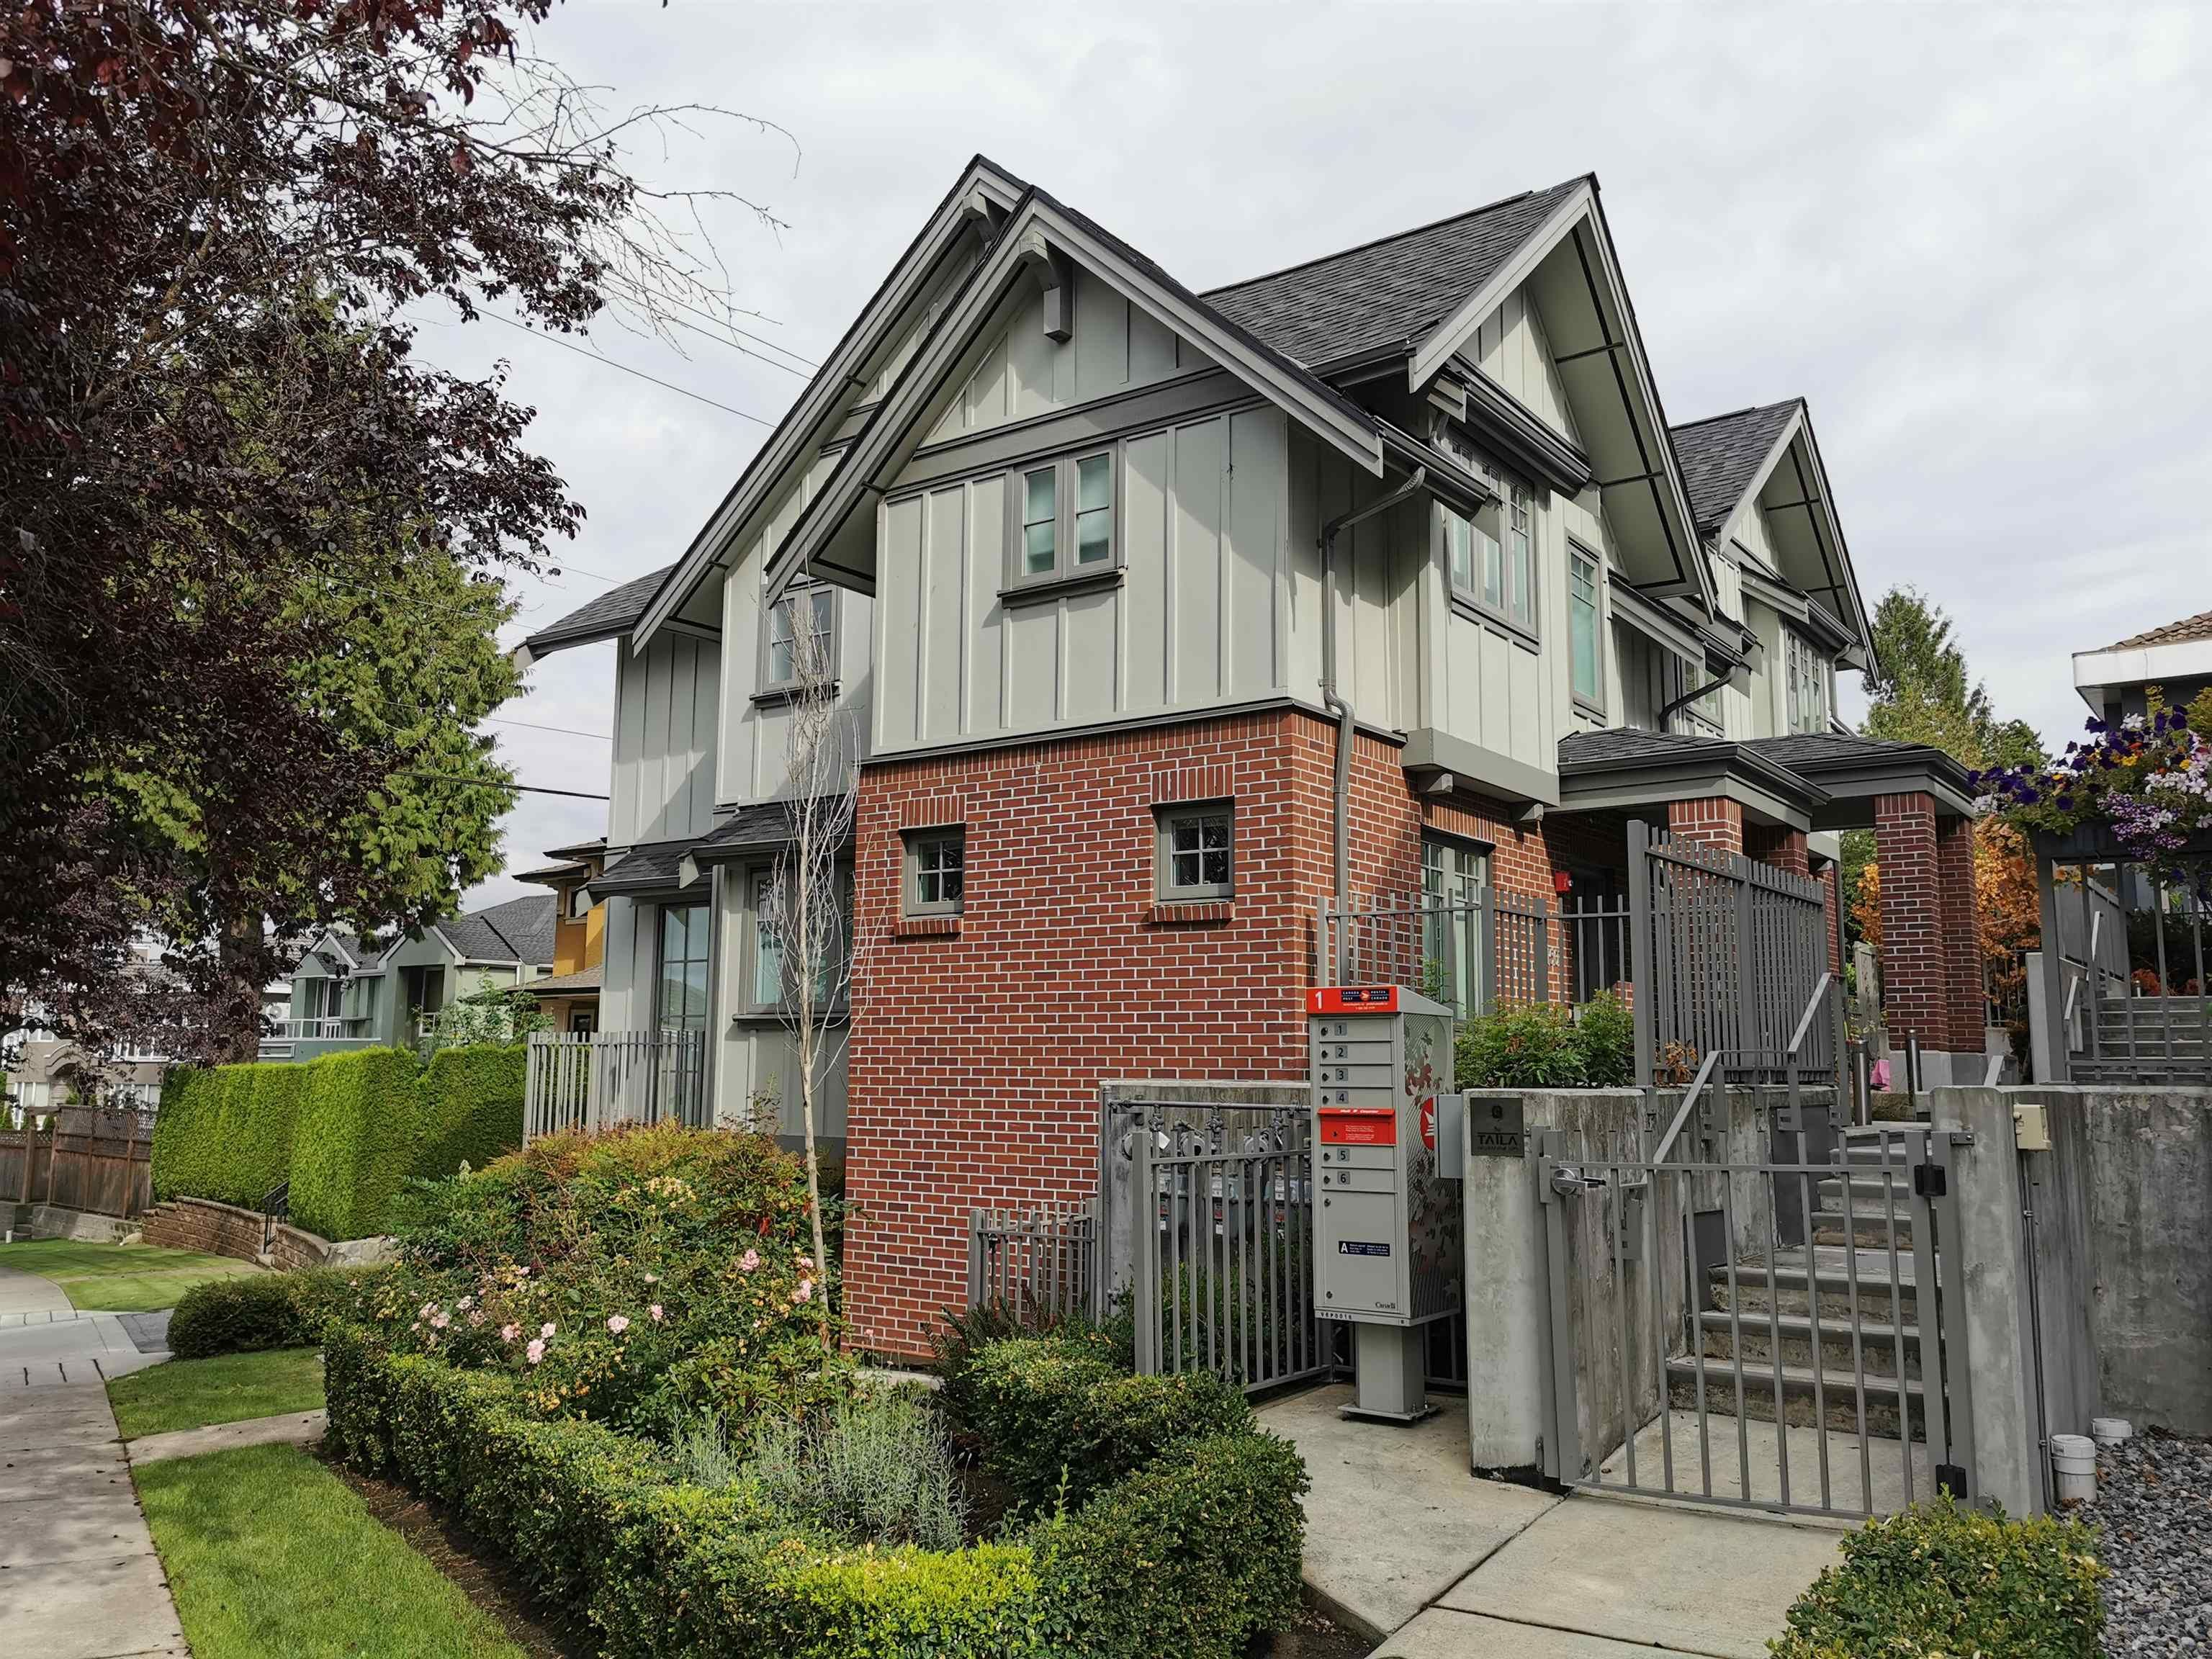 Main Photo: 1507 W 59TH Avenue in Vancouver: South Granville Townhouse for sale (Vancouver West)  : MLS®# R2609614